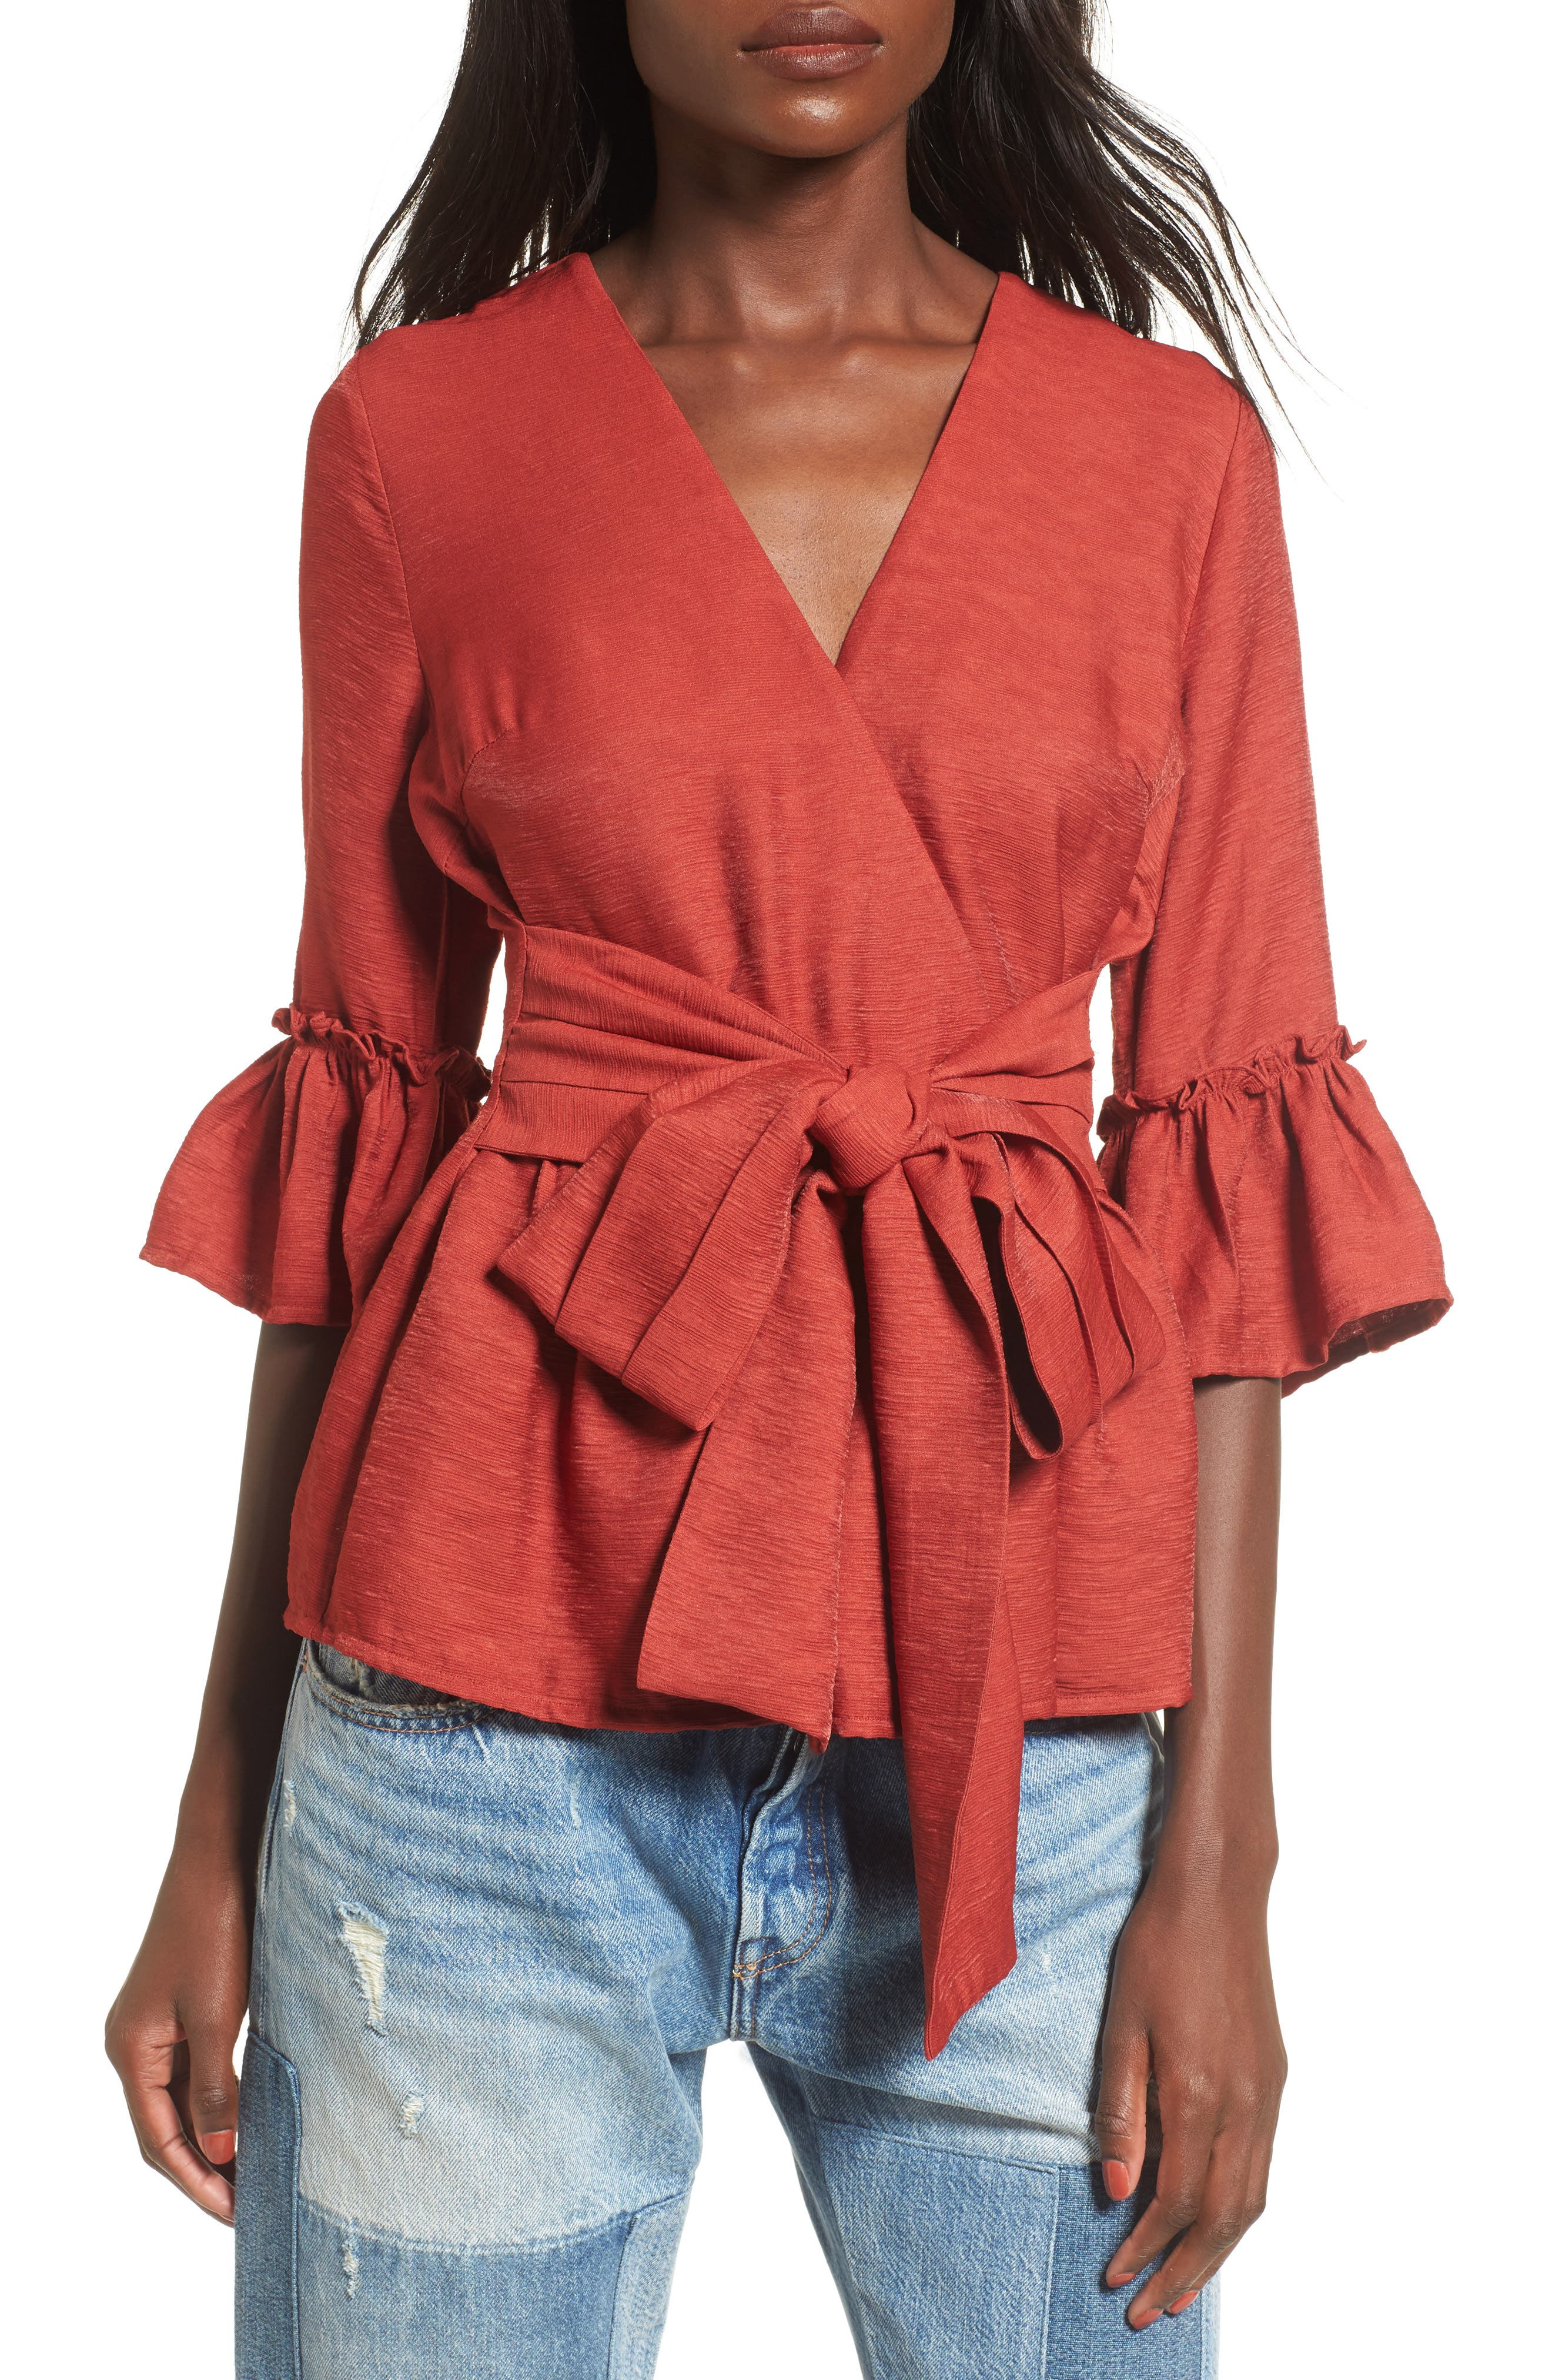 Alternate Image 1 Selected - Moon River Ruffle Surplice Top